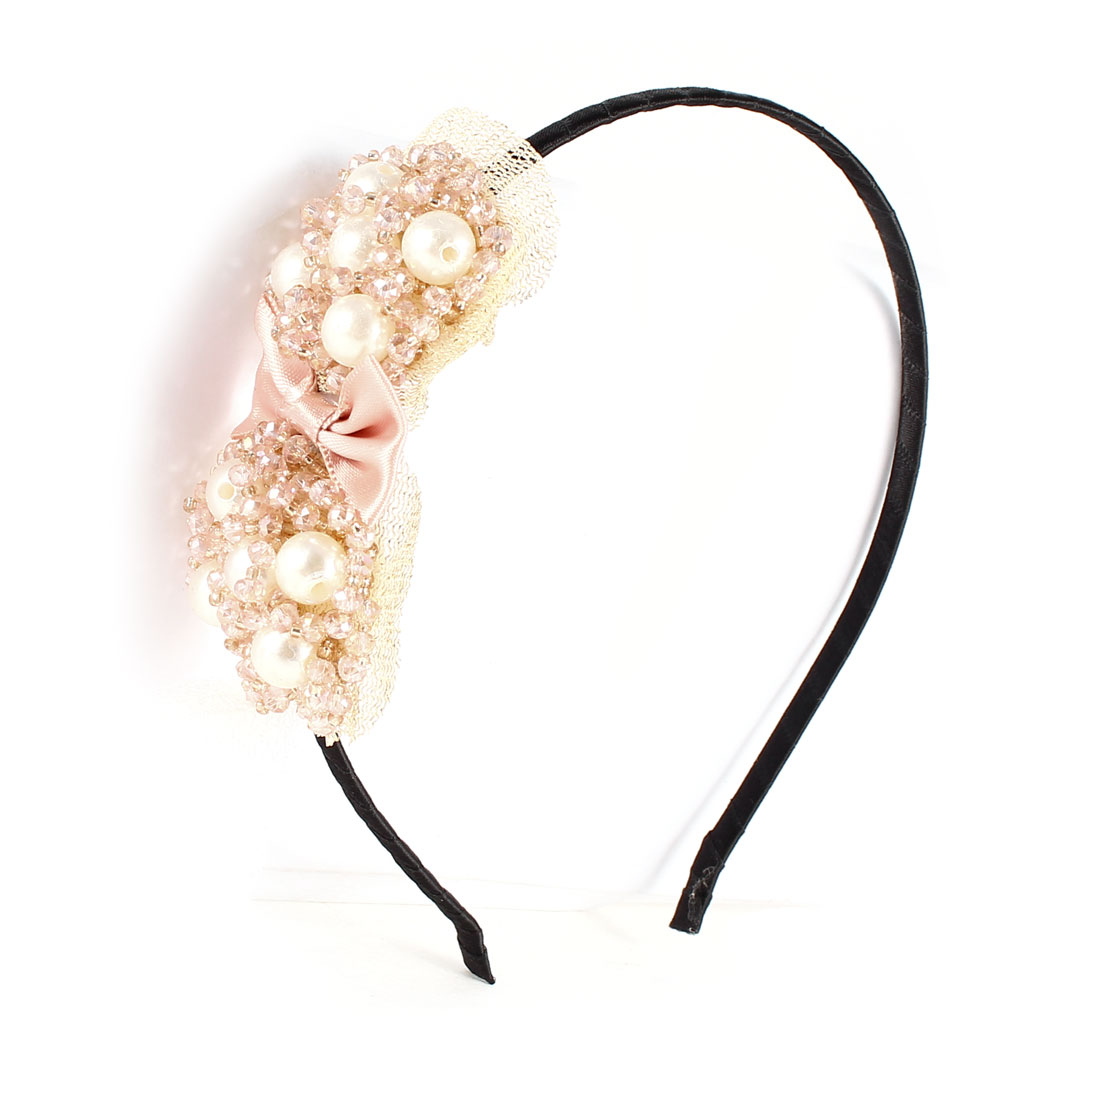 Imitation Pearls Decor Pink Bowtie Ornament Hair Hoop Band Black for Woman